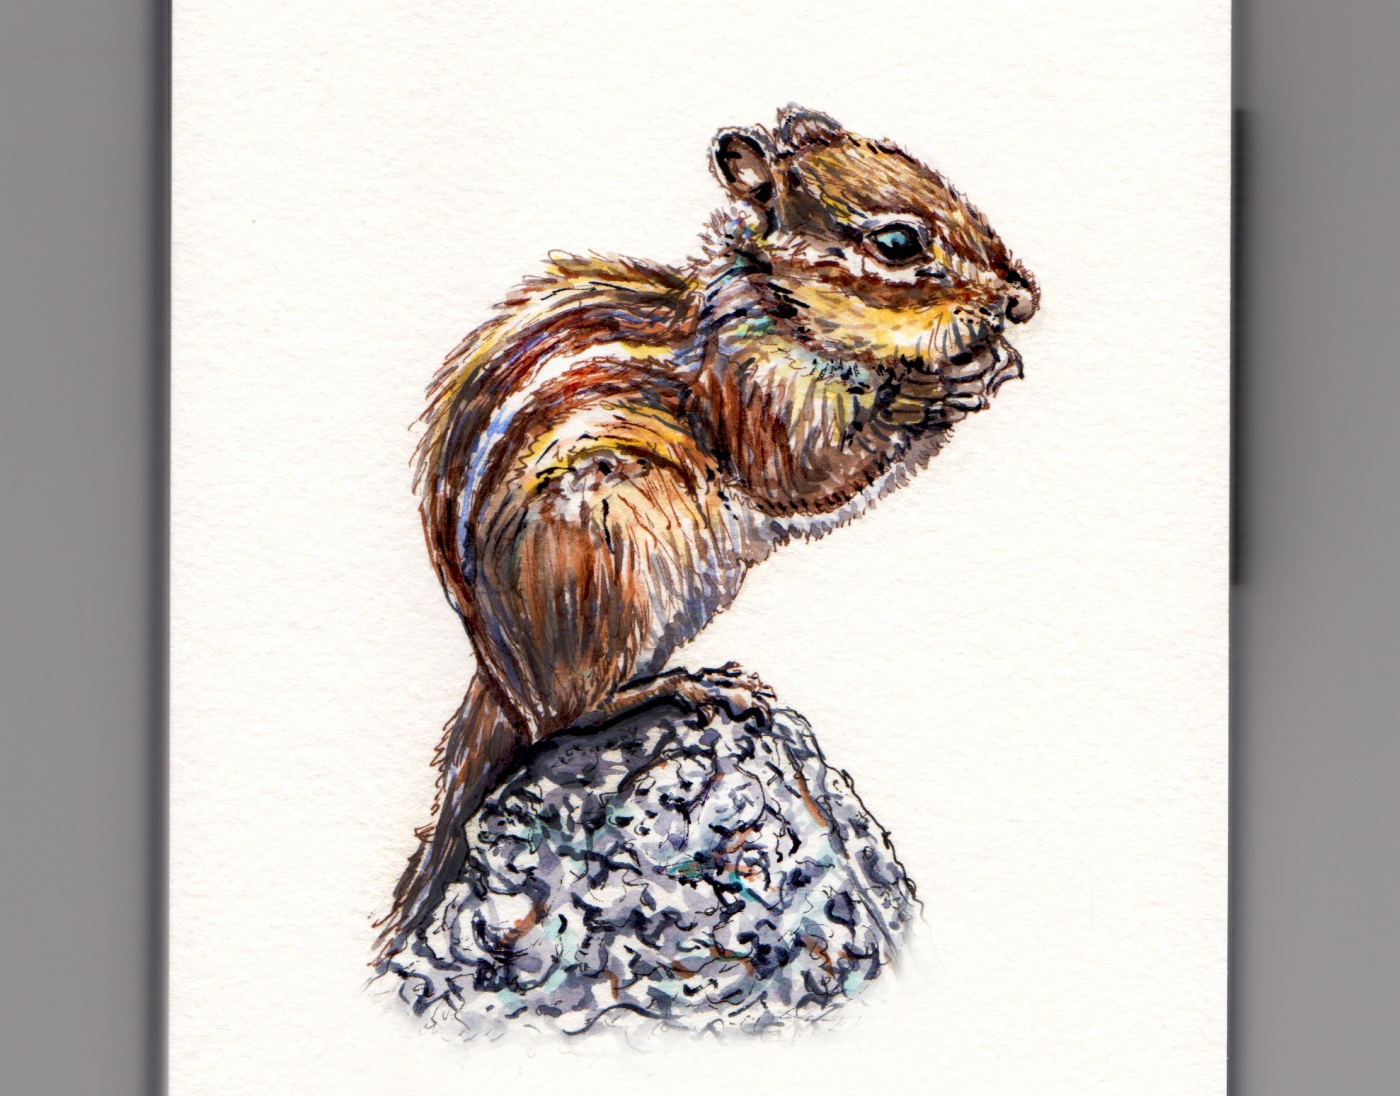 A Tiny Little Chipmunk doodlewash and watercolor sketch of furry little rodent on a rock